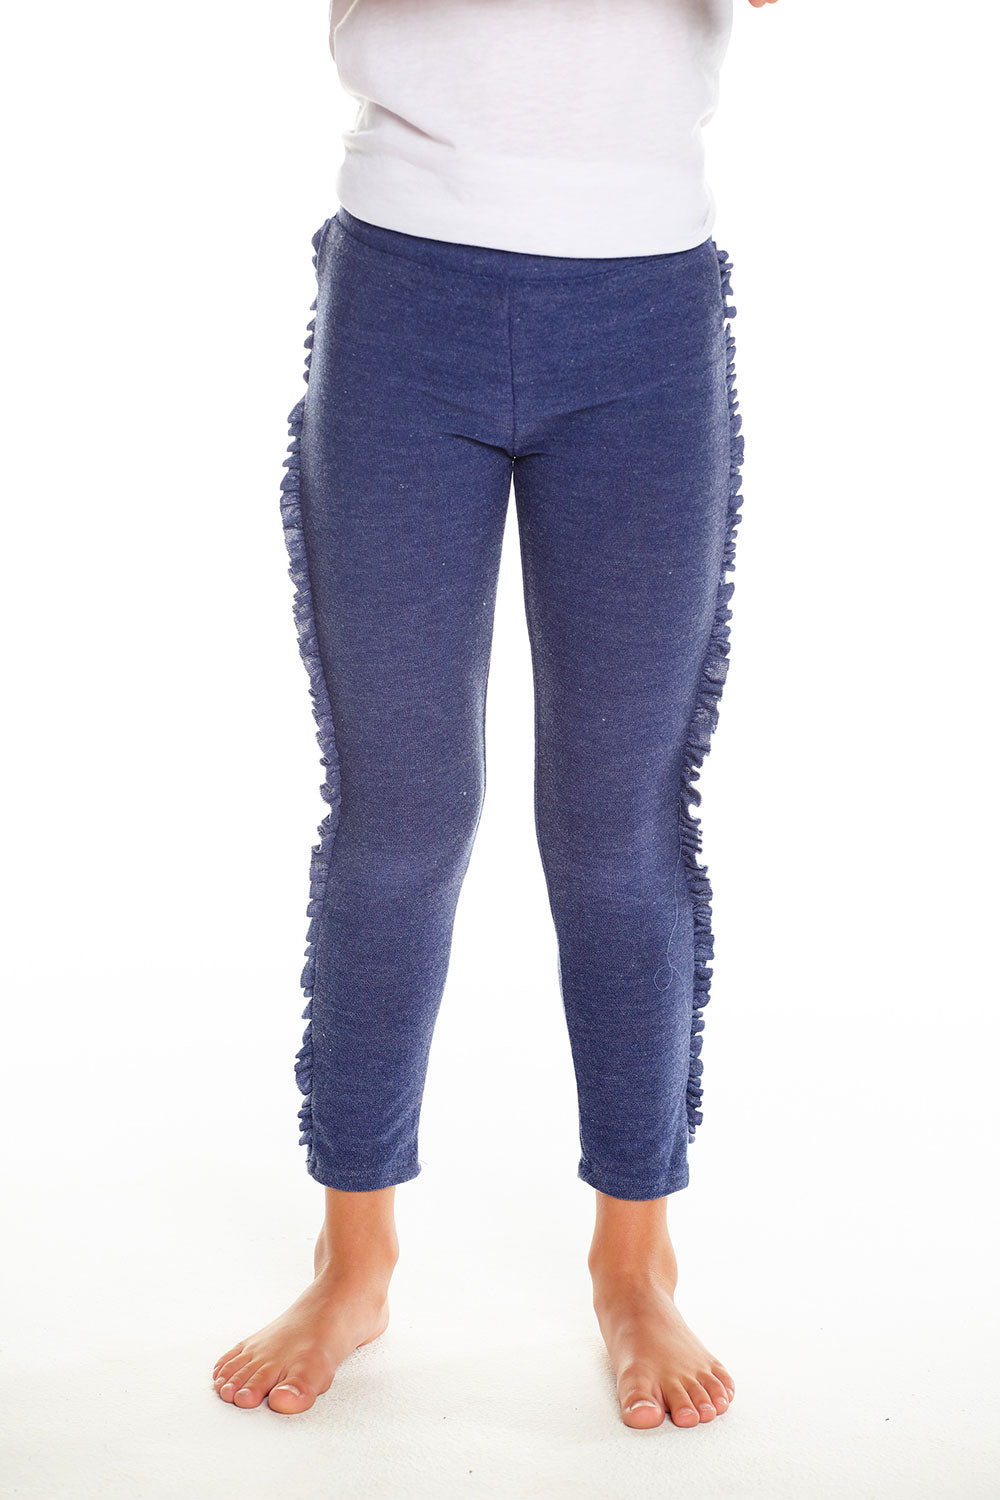 Cozy Knit Ruffle Side Leggings GIRLS chaserbrand4.myshopify.com